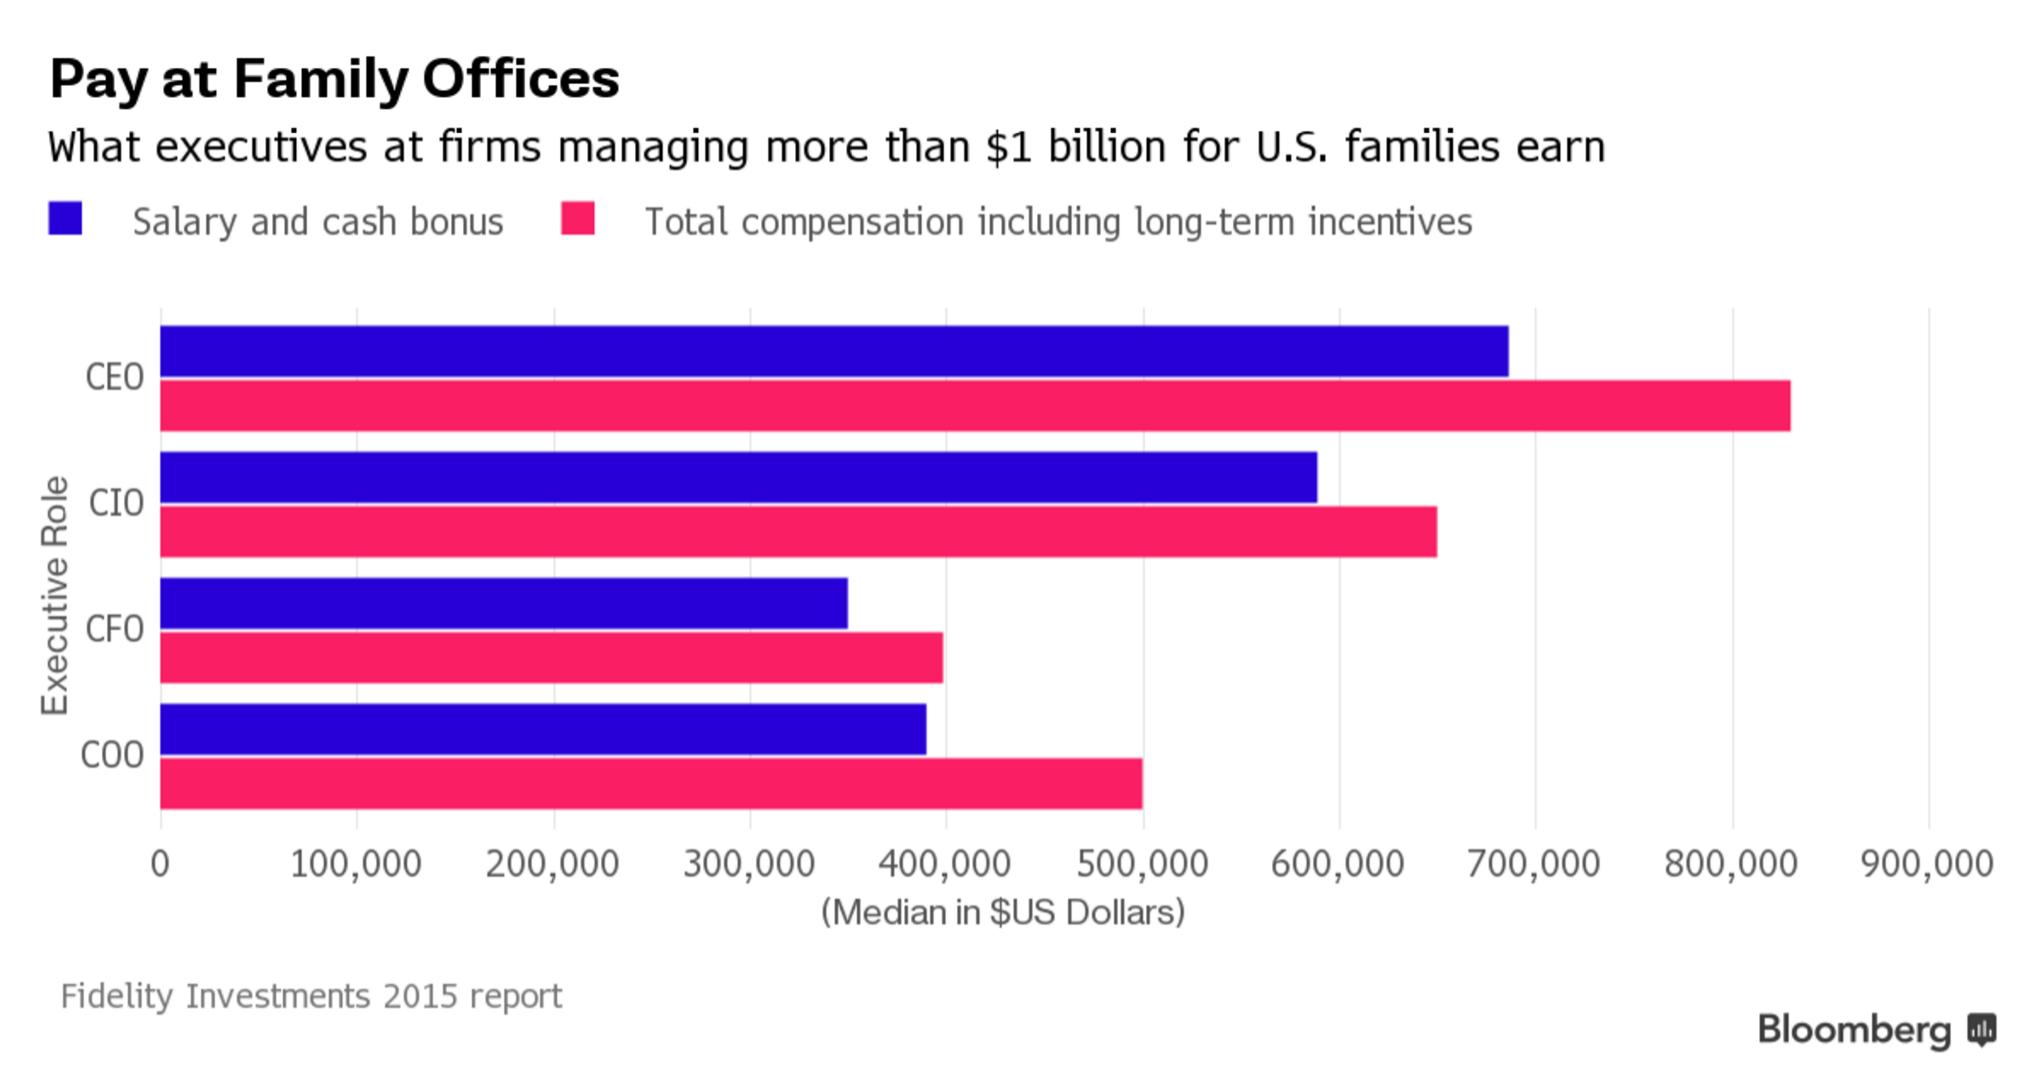 Top family office ceos earned 830 000 in 2014 fidelity says bloomberg professional services - Fidelity family office services ...